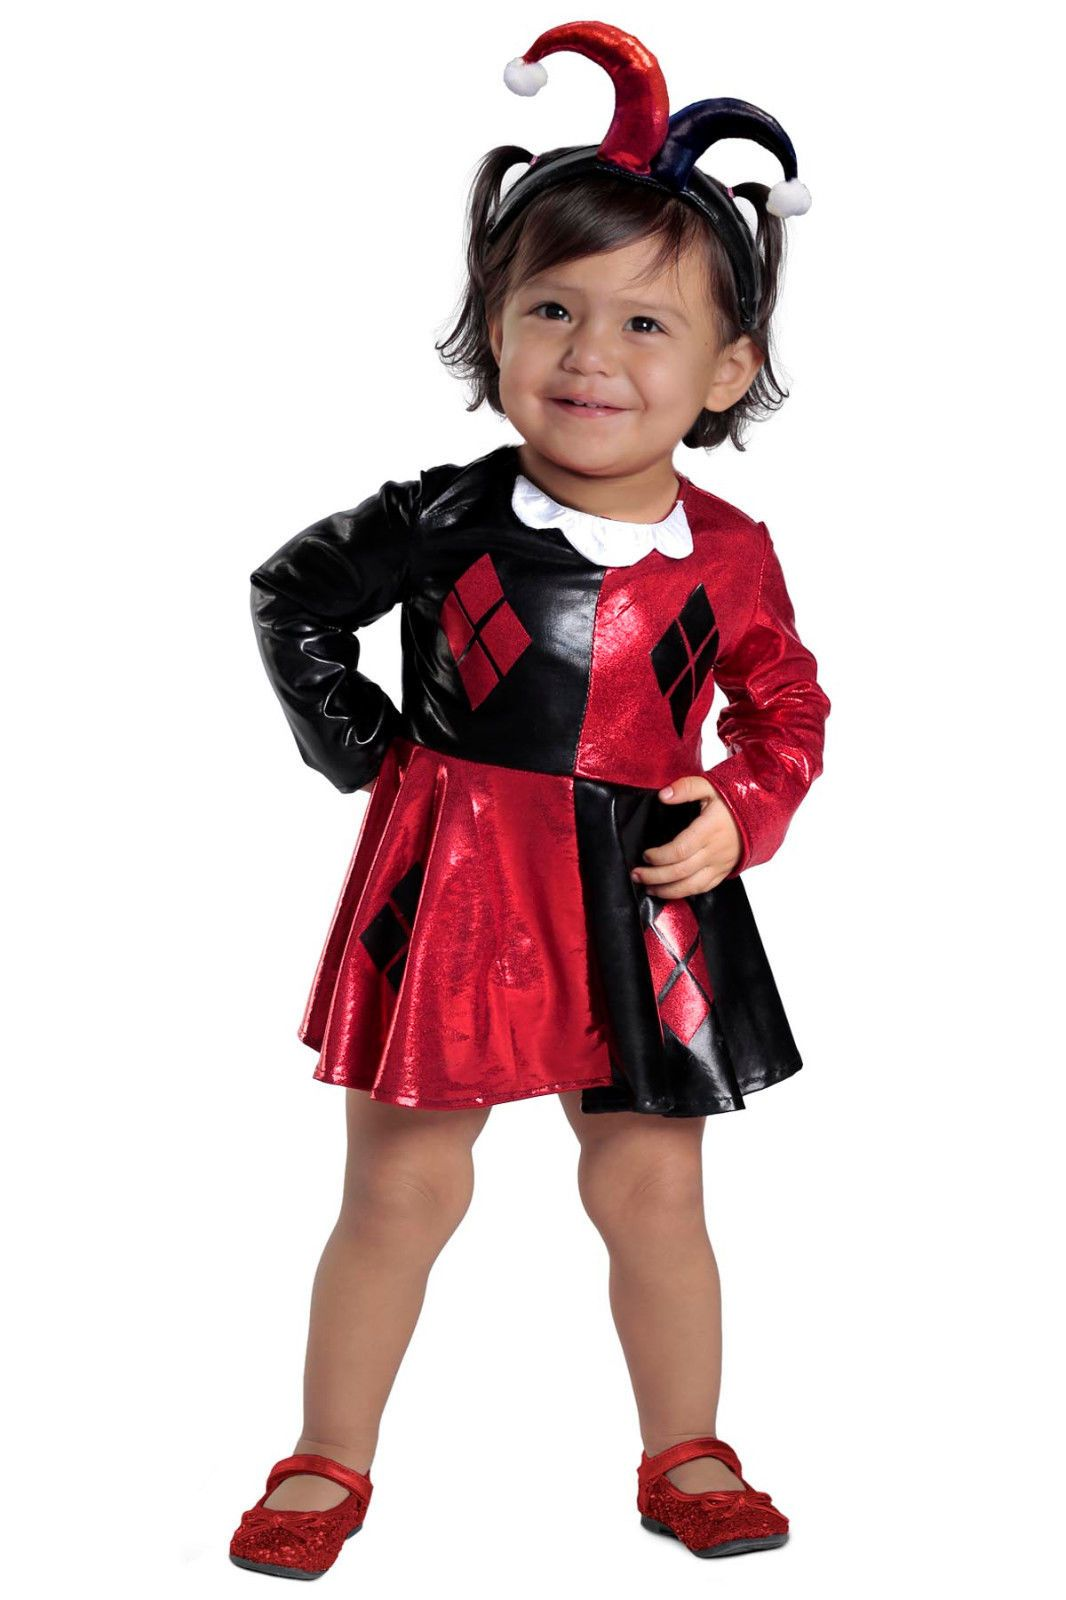 f381dddaa8a5 Details about Harley Quinn™ Costume DC Comics Super Hero Girls Baby ...